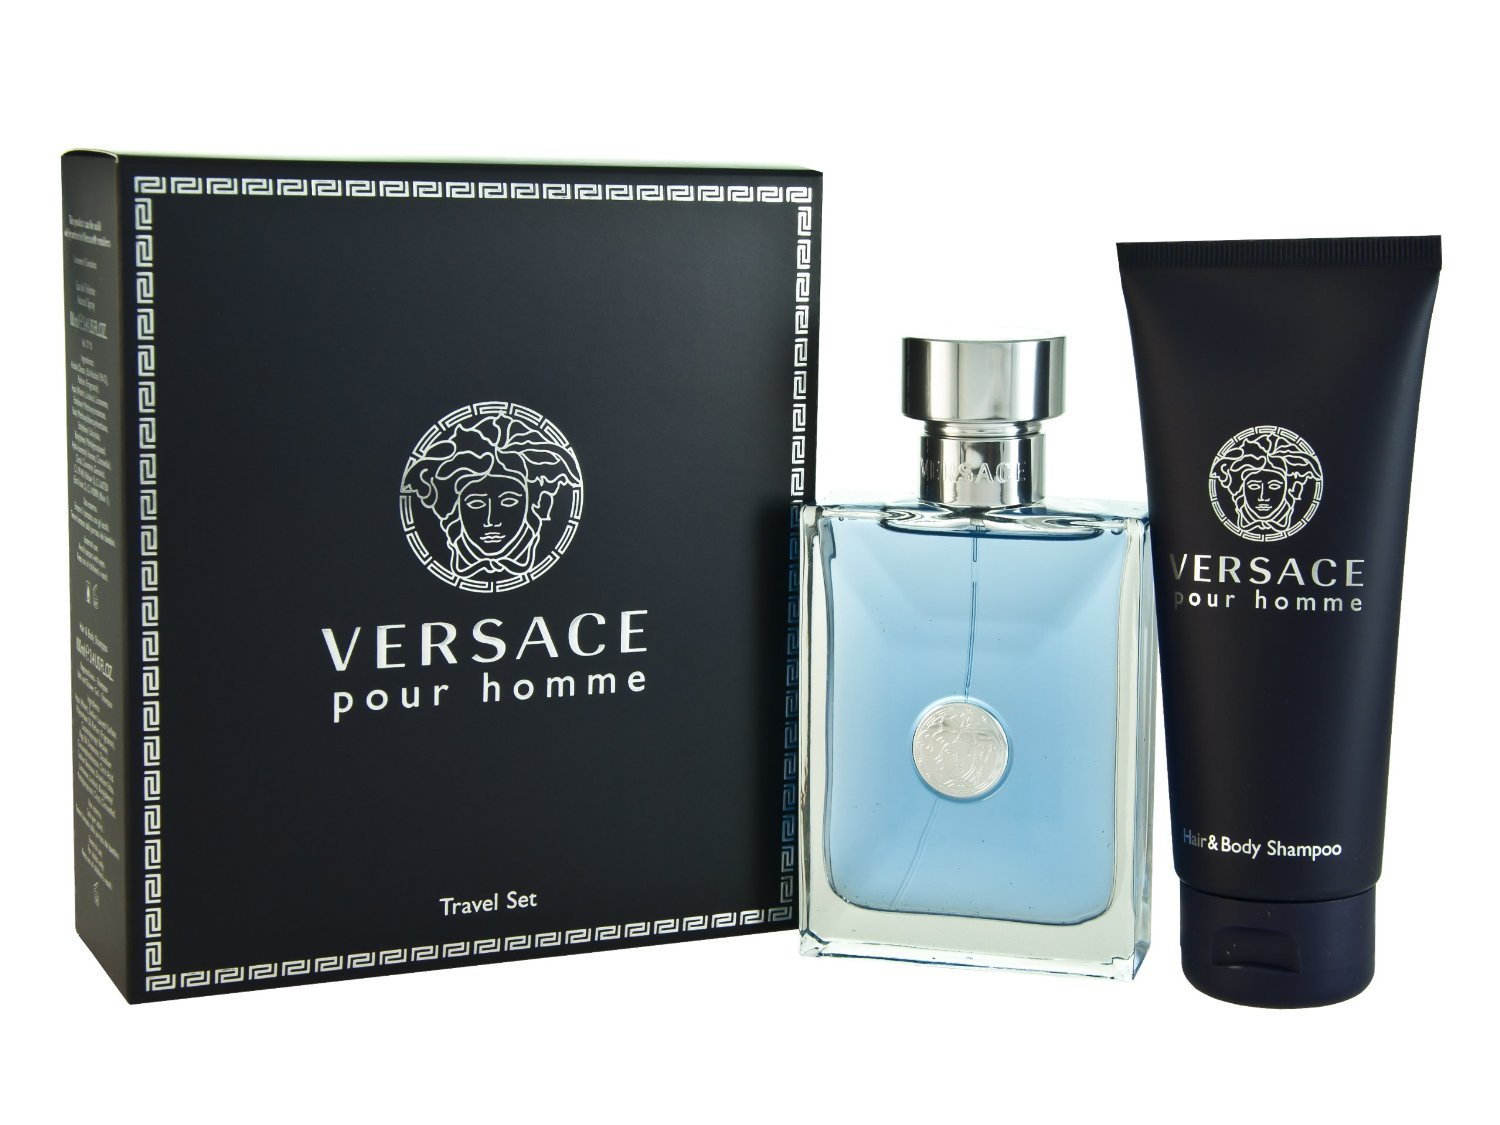 Versace Pour Homme for Men-2 Pc Gift Set 3.4-Ounce EDT Spray, 3.4-Ounce Hair and Body Shampoo VER720074